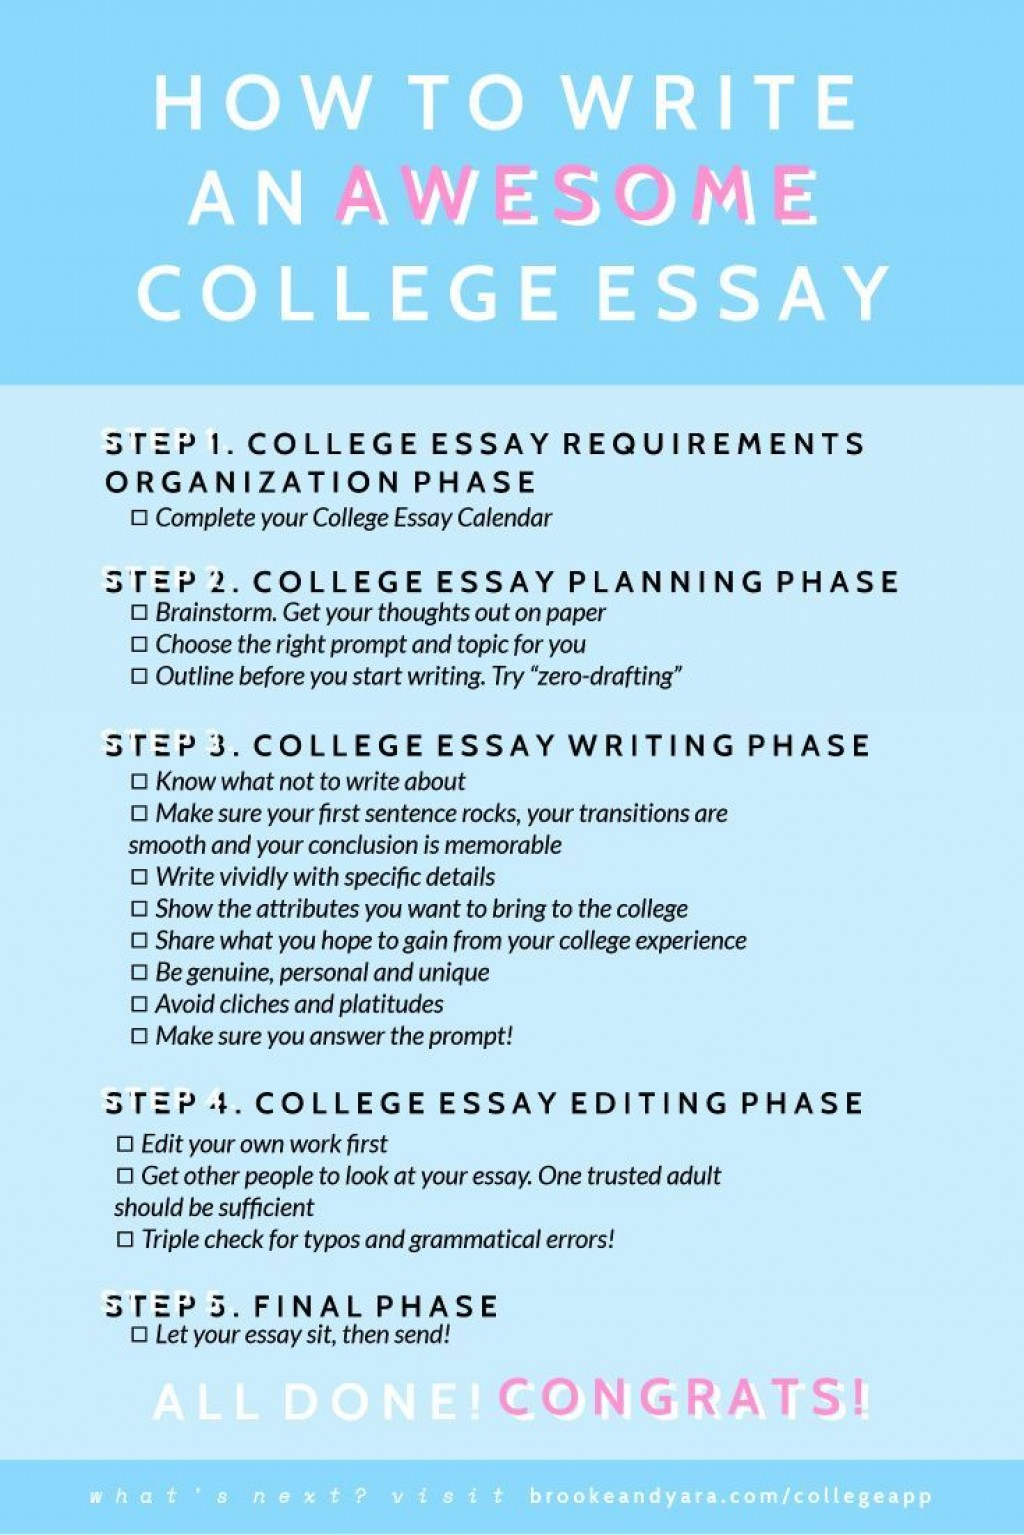 009 Essay Example What Not To Write About In Shocking A College Transfer Good Things Large